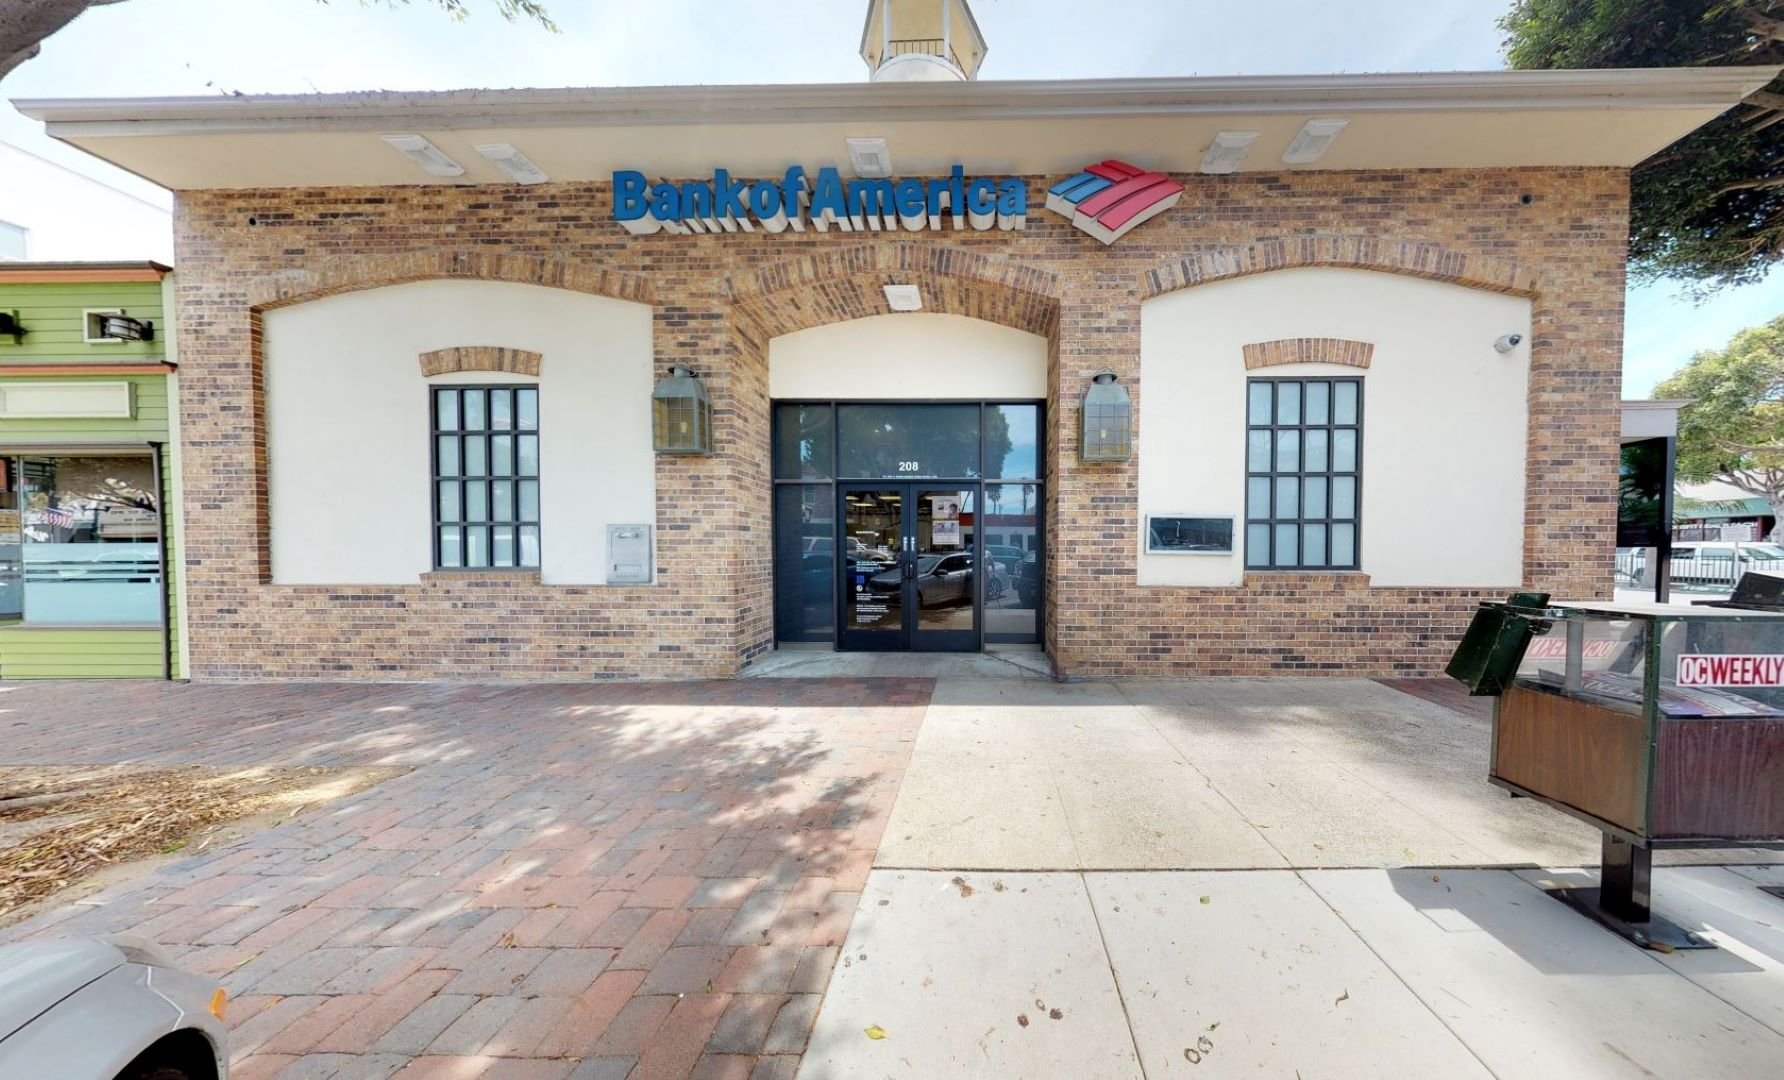 Bank of America financial center with walk-up ATM | 208 Main St, Seal Beach, CA 90740